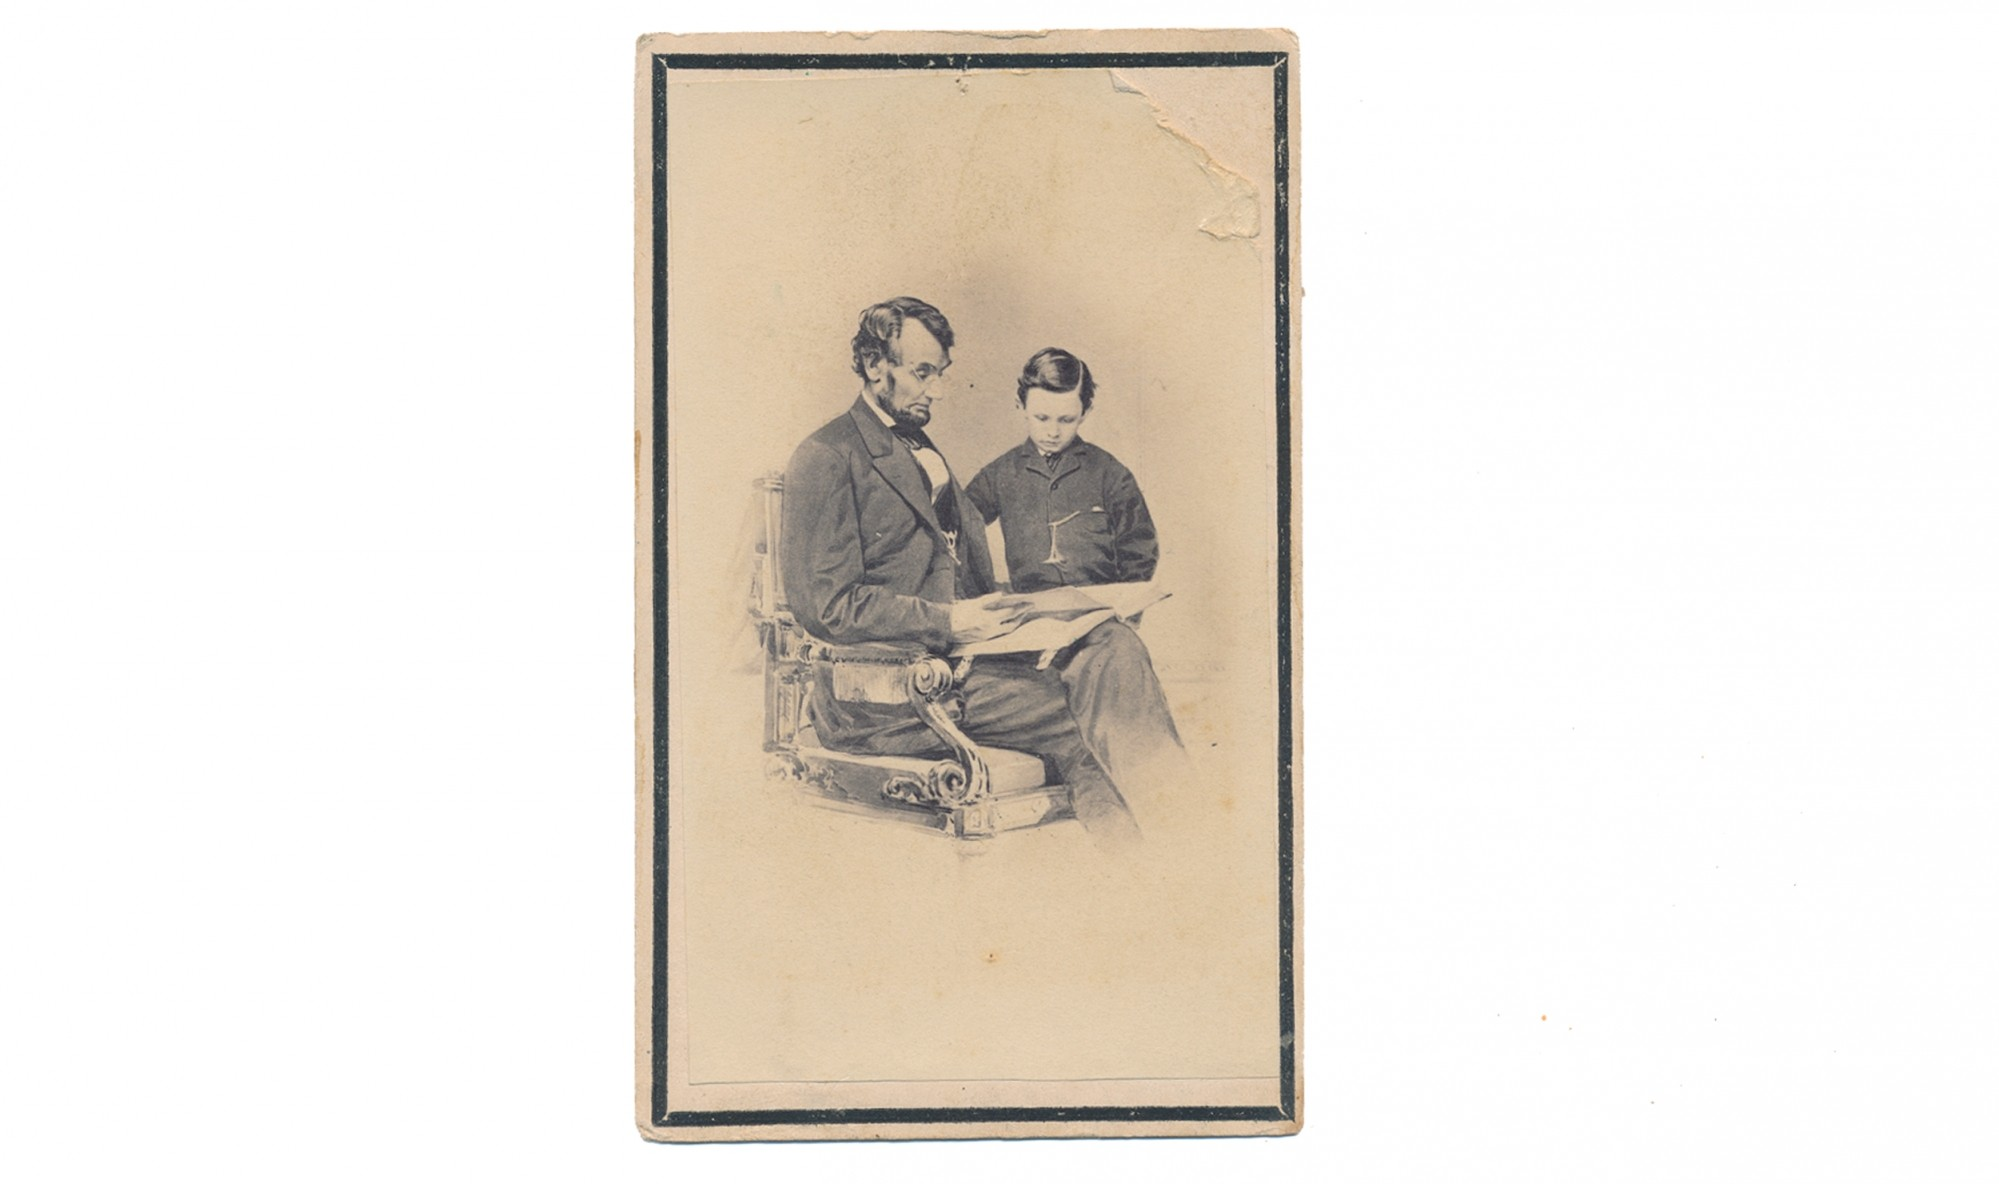 CDV OF ABRAHAM LINCOLN AND SON TAD